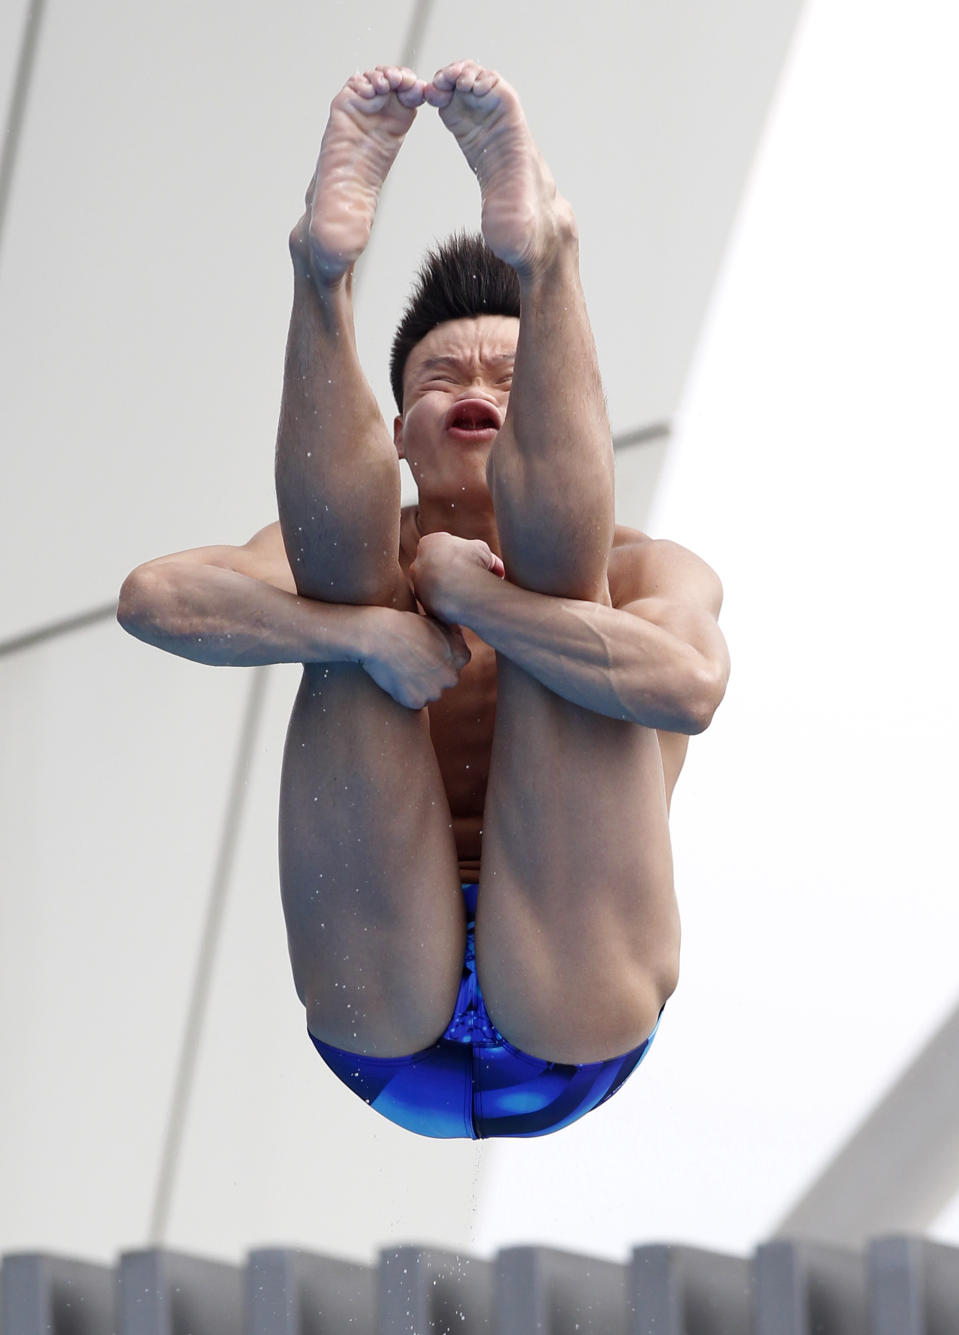 China's He Min dives during the men's 1-meter Springboard final at the FINA Swimming World Championships in Shanghai, China, Monday, July 18, 2011. (AP Photo/Wong Maye-E)